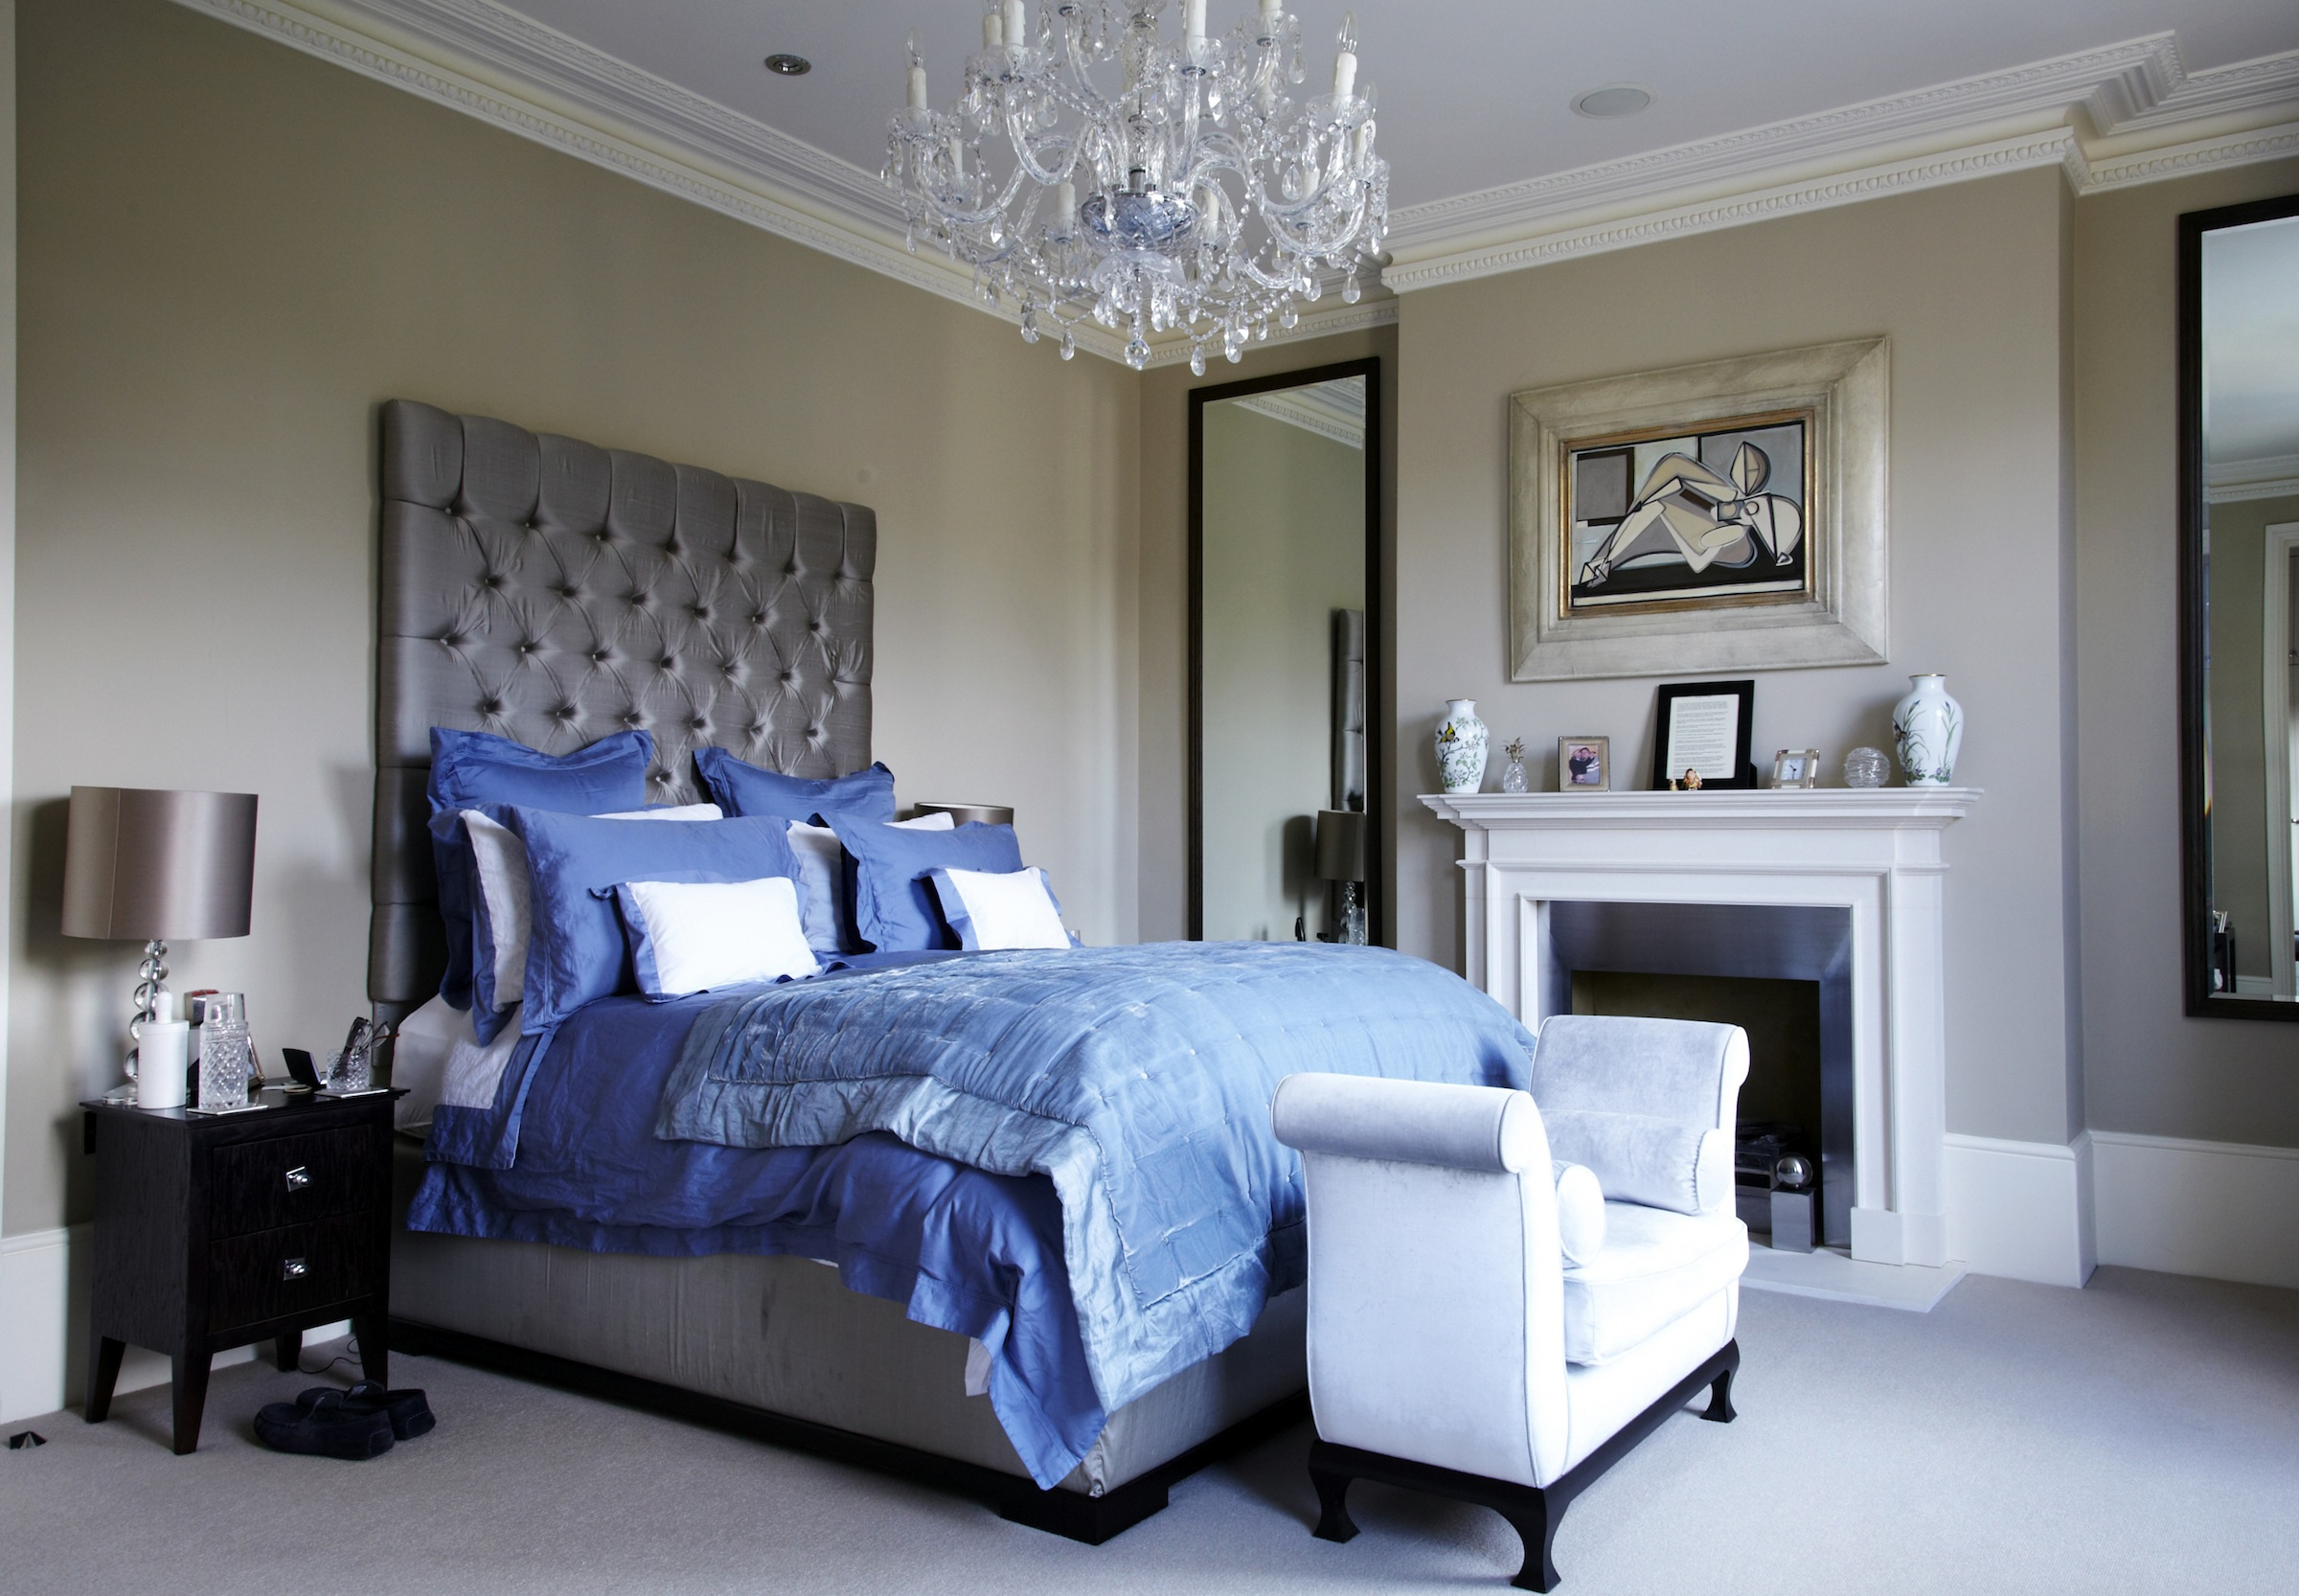 Awesome Modern Victorian Bedroom Designs 23 About Remodel Home with regard to 15 Smart Concepts of How to Makeover Modern Victorian Bedroom